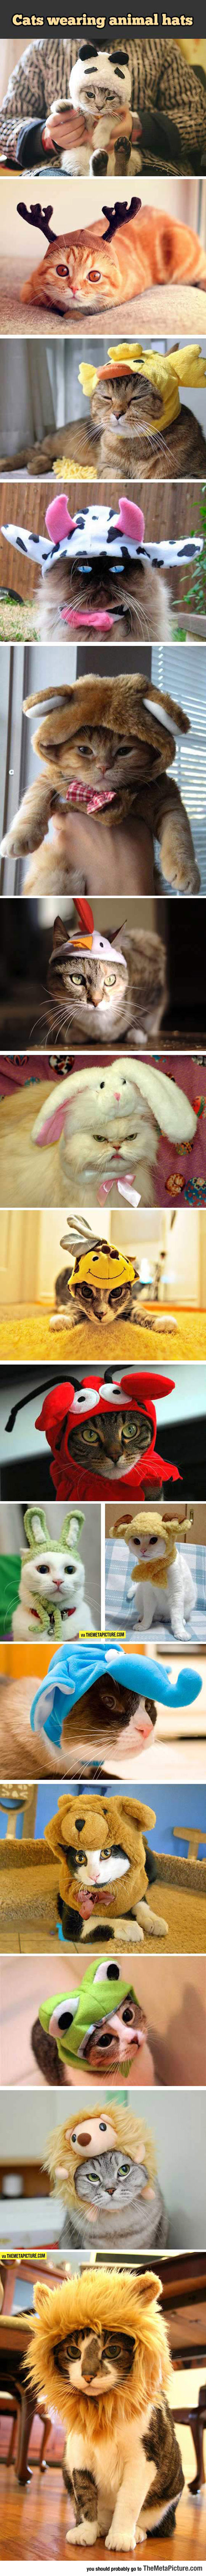 cool-kittens-compilation-hats-caps